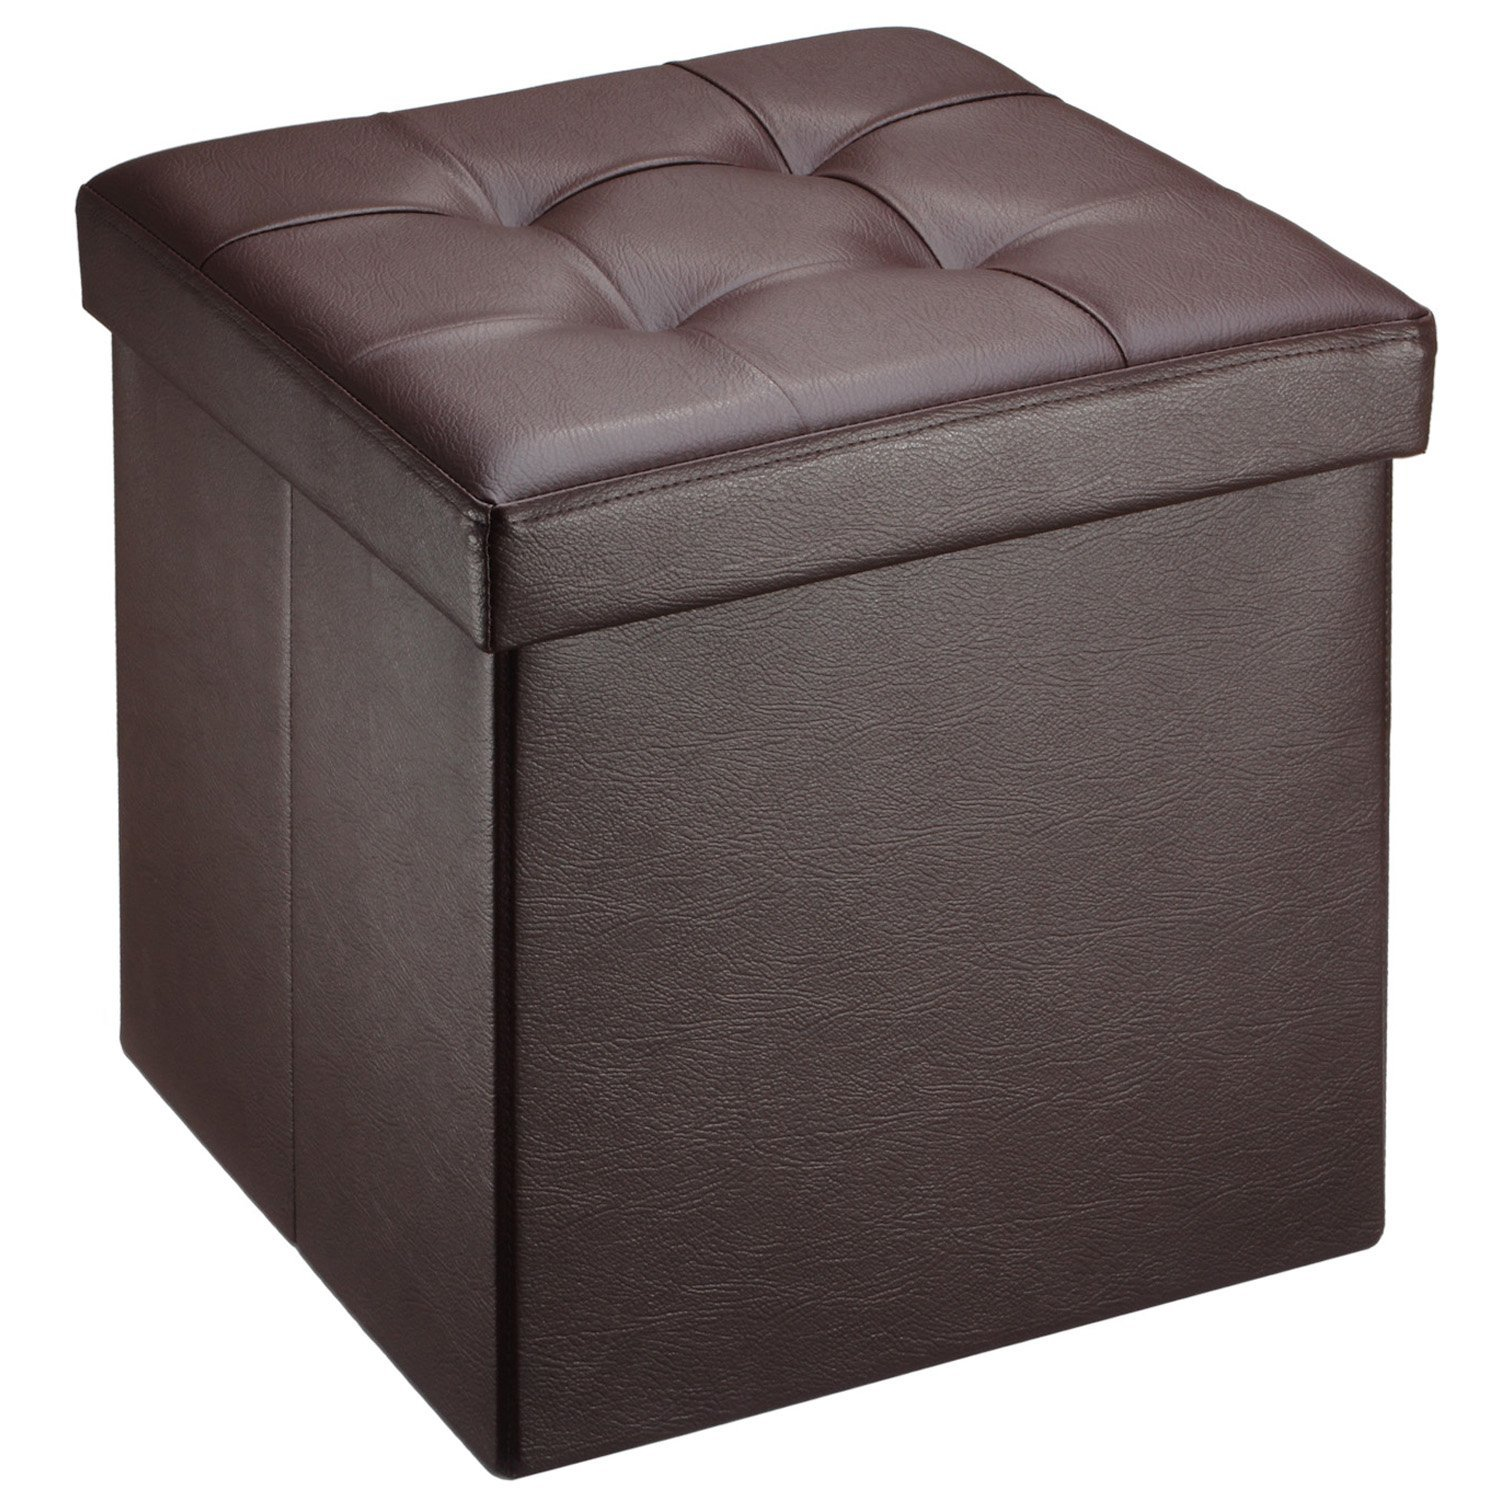 Storage Cube Ottoman | Studded Storage Ottoman | Leather Cube Footstool